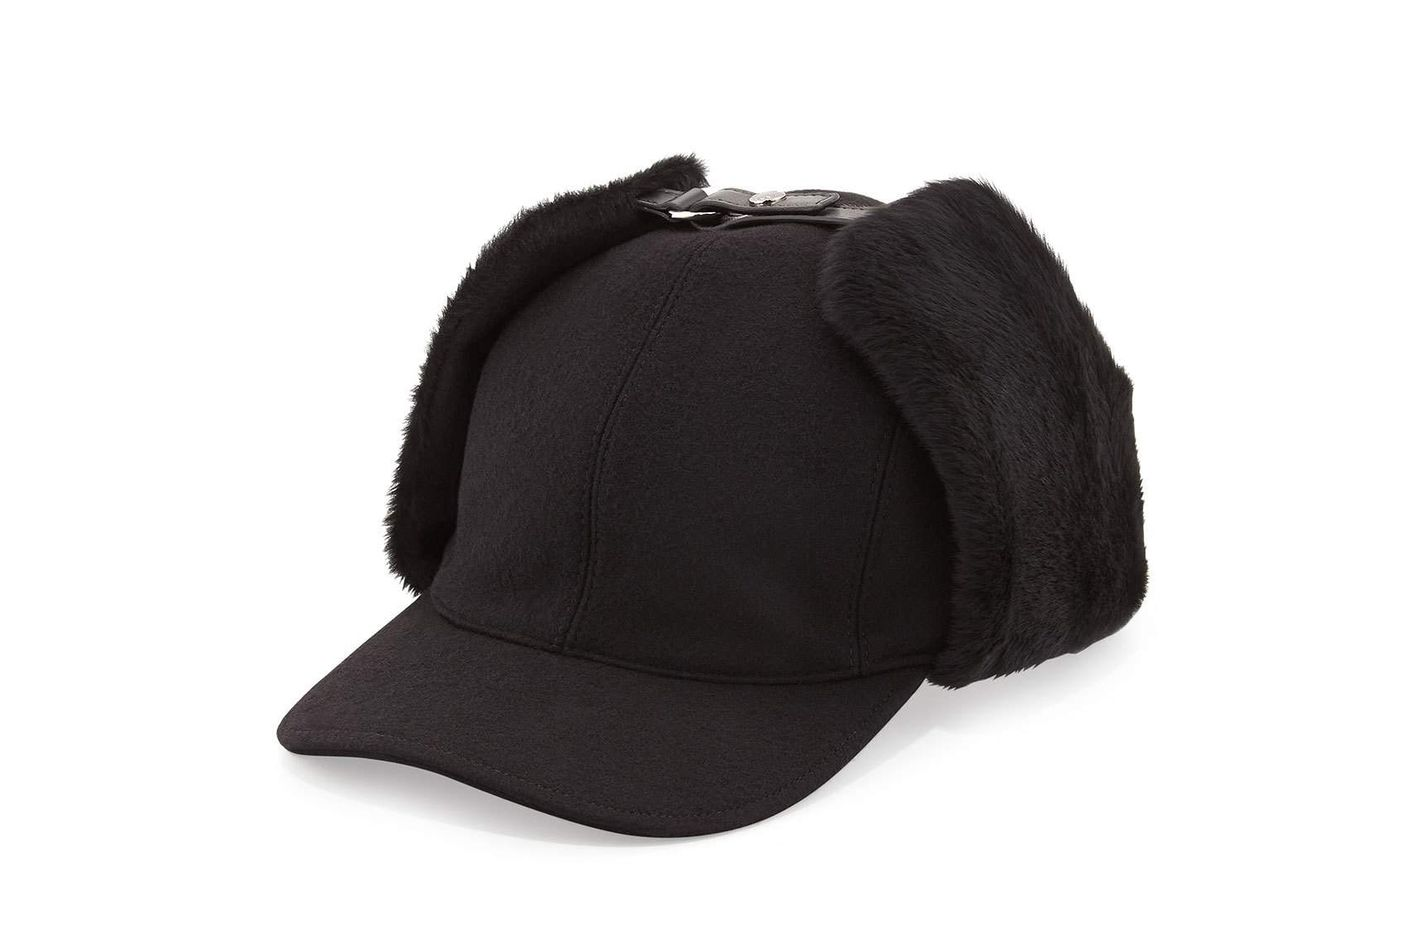 Prada Wool and Shearling Trapper Baseball Cap